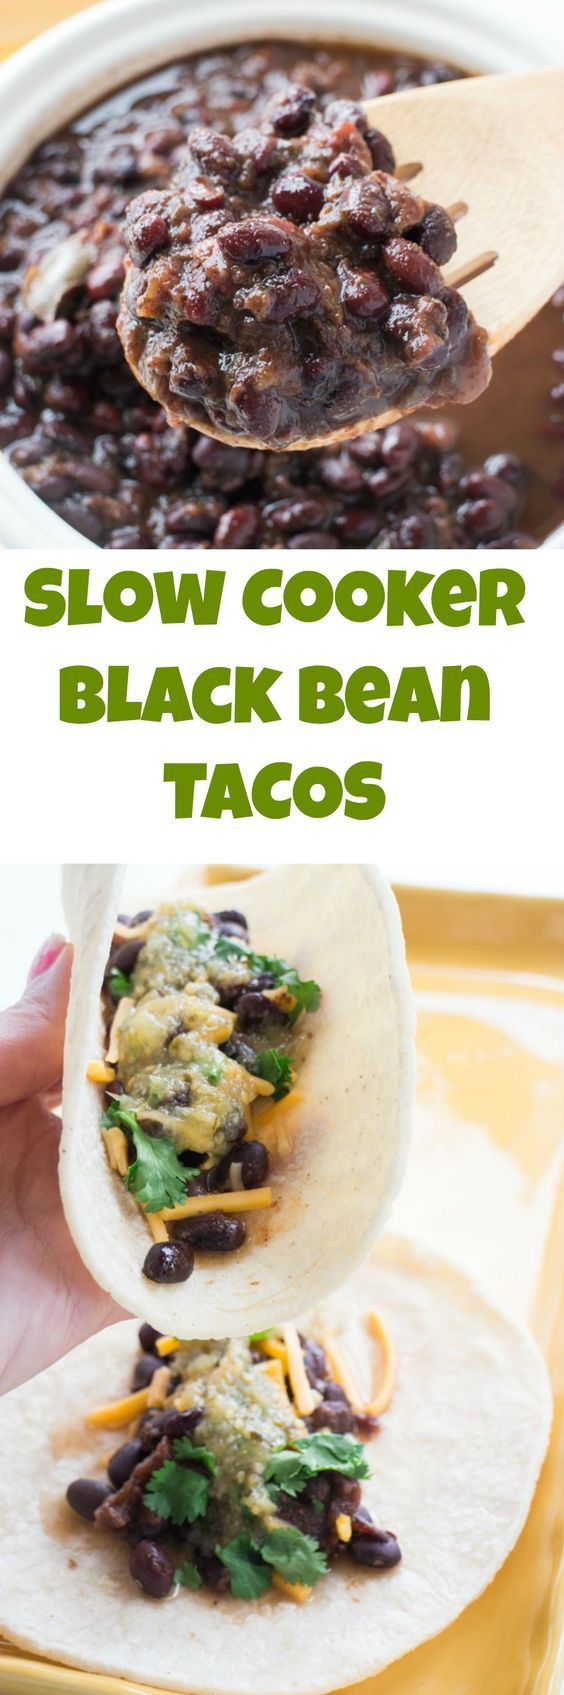 Slow Cooker Black Beans are slow cooked with spices for 4 hours. They make delicious tacos!